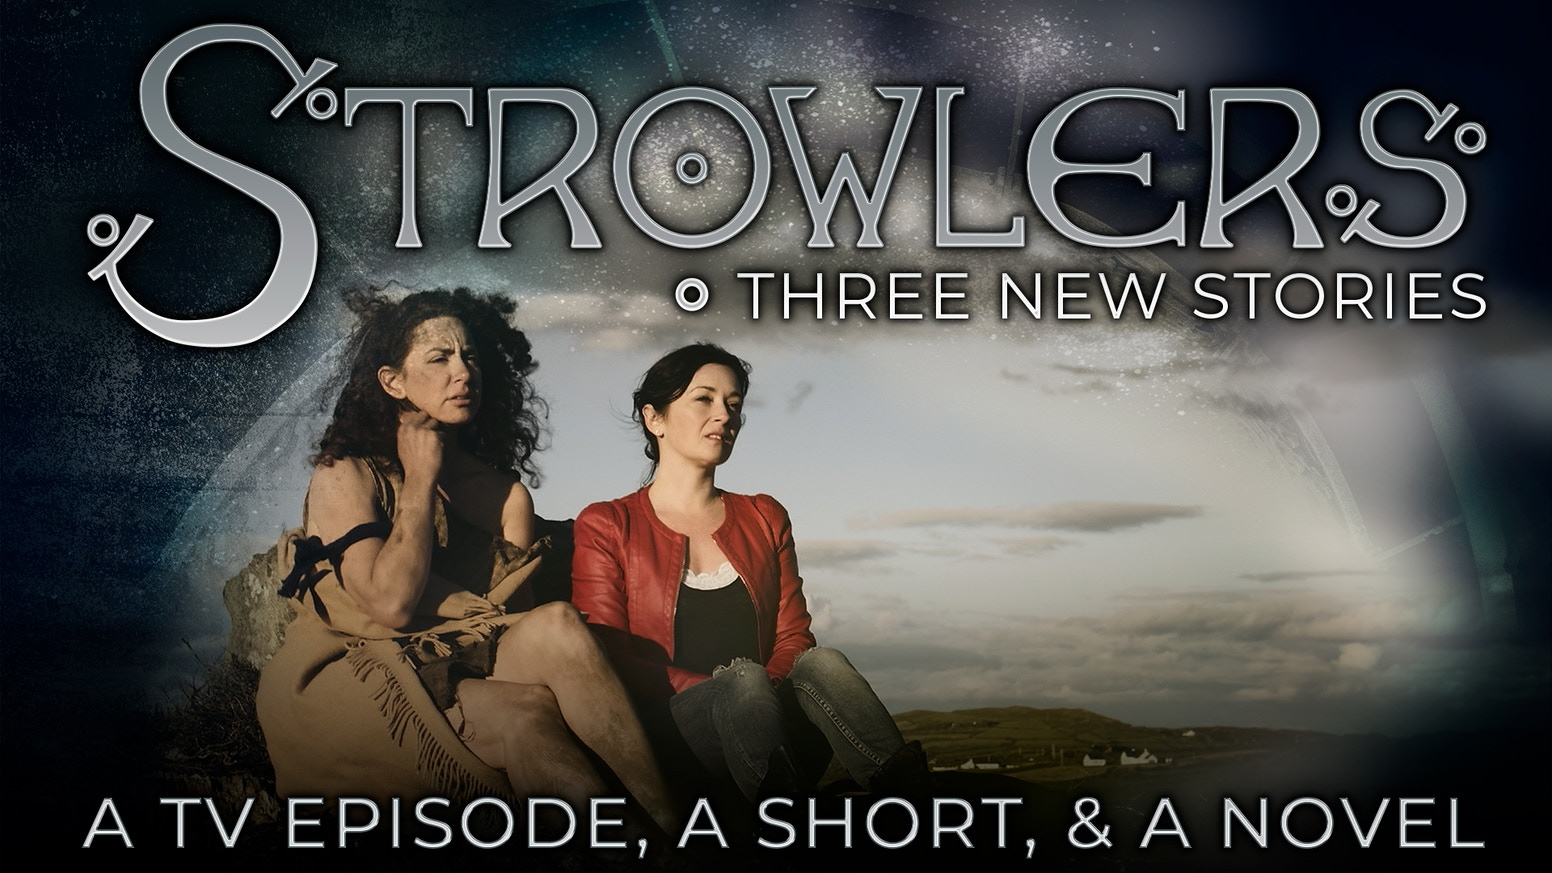 "A modern fantasy TV series. The story begun in ""Strowlers Ireland"" continues with a short film, an episode set in Denmark, and a novel."